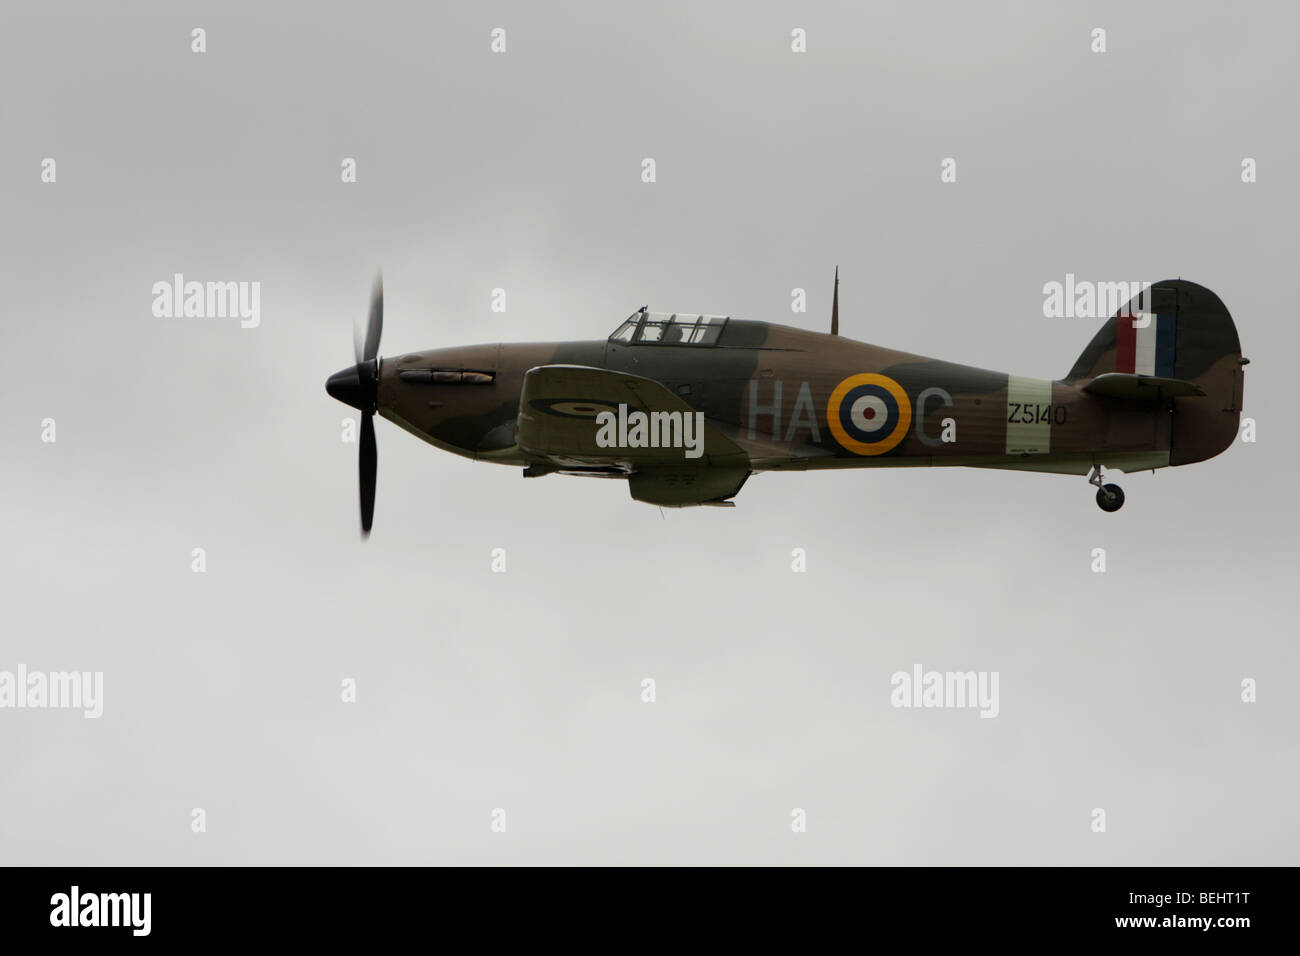 A Hawker Hurricane giving a flypast at IWM Duxford, England. - Stock Image